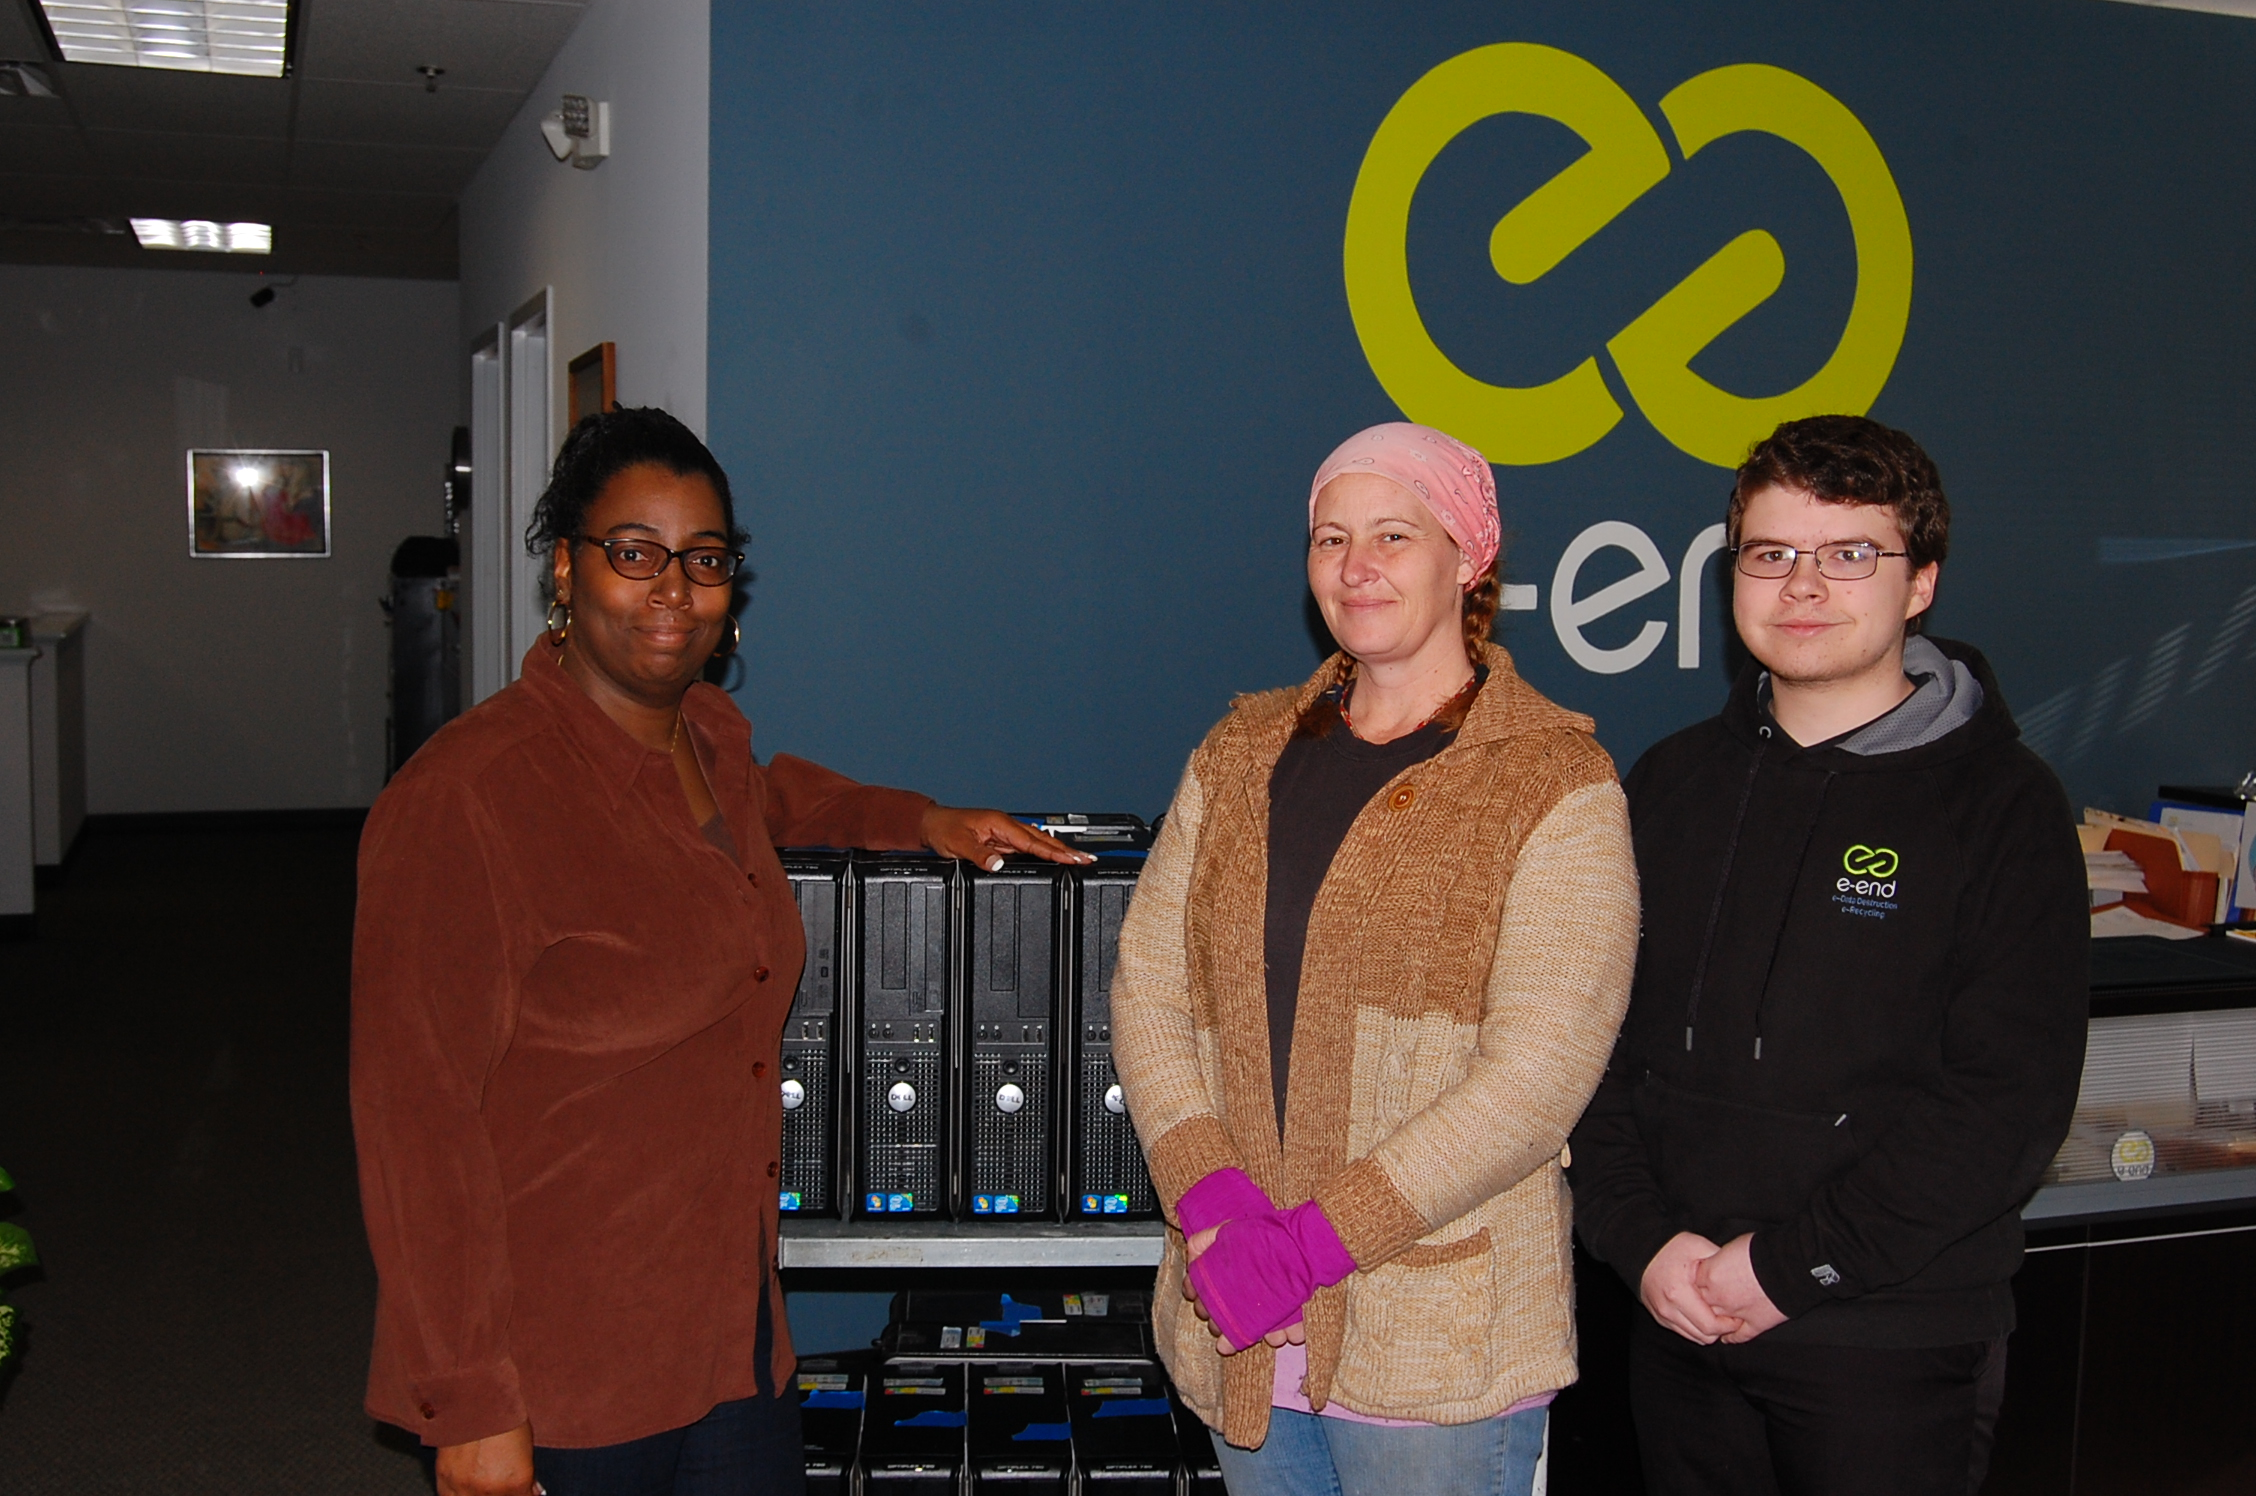 Two of our team members,who prepared the computers for use (right), Maria & Jakob, presenting Mrs. Green (left) with equipment